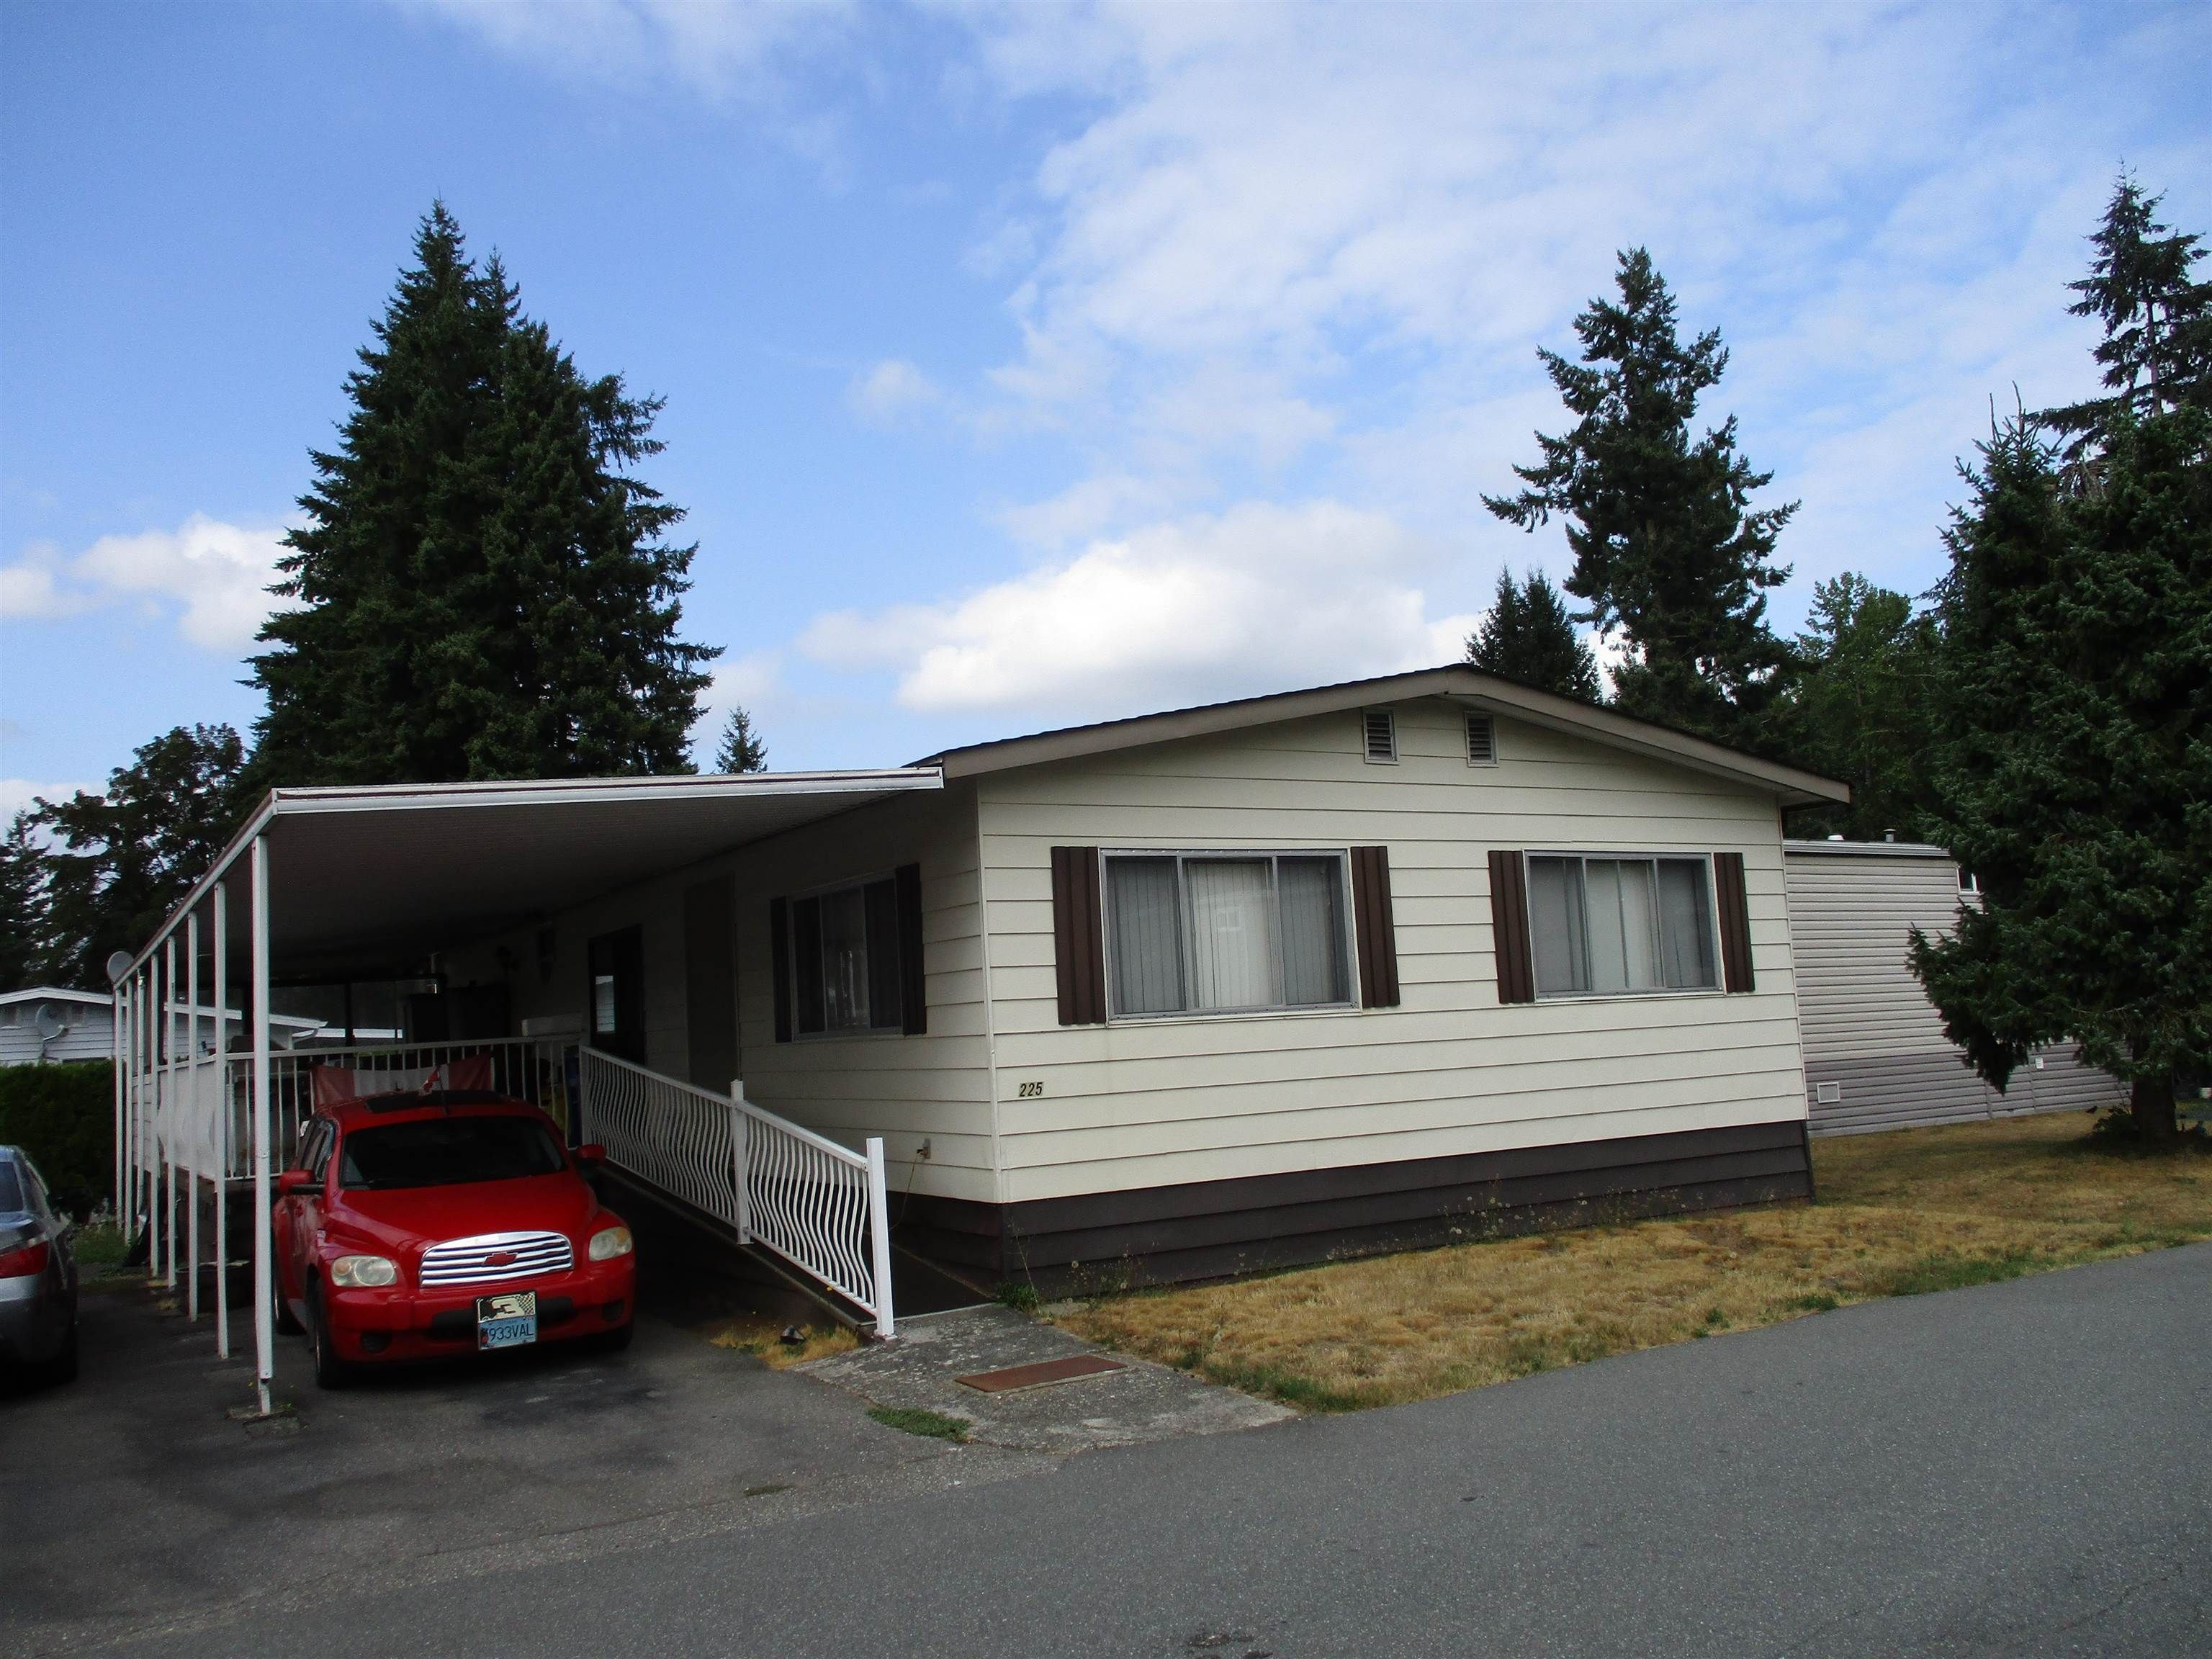 """Main Photo: 225 3665 244 Street in Langley: Aldergrove Langley Manufactured Home for sale in """"LANGLEY GROVE ESTATES"""" : MLS®# R2612491"""